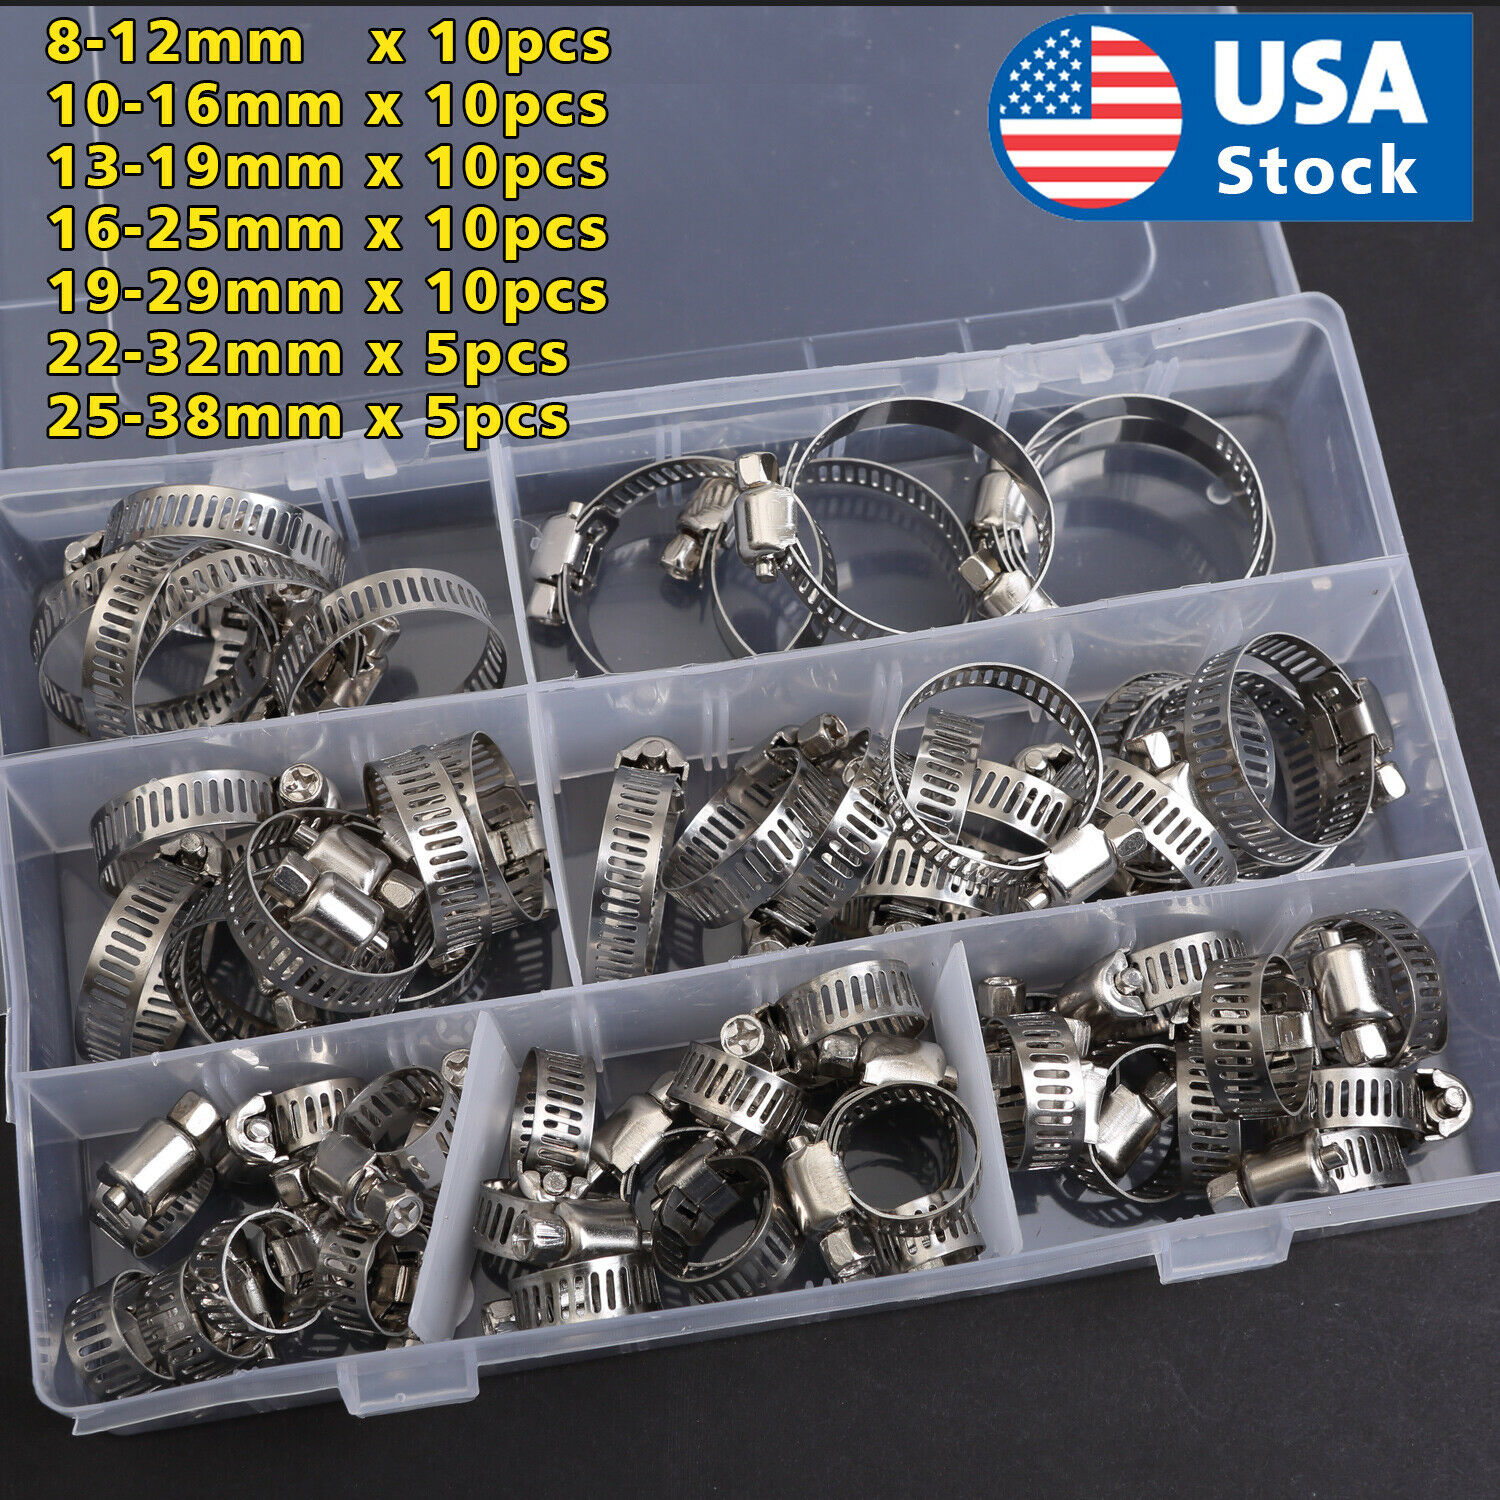 60 Pieces Adjustable Hose Clamps Worm Gear Stainless Steel Clamp Assortment Car & Truck Parts